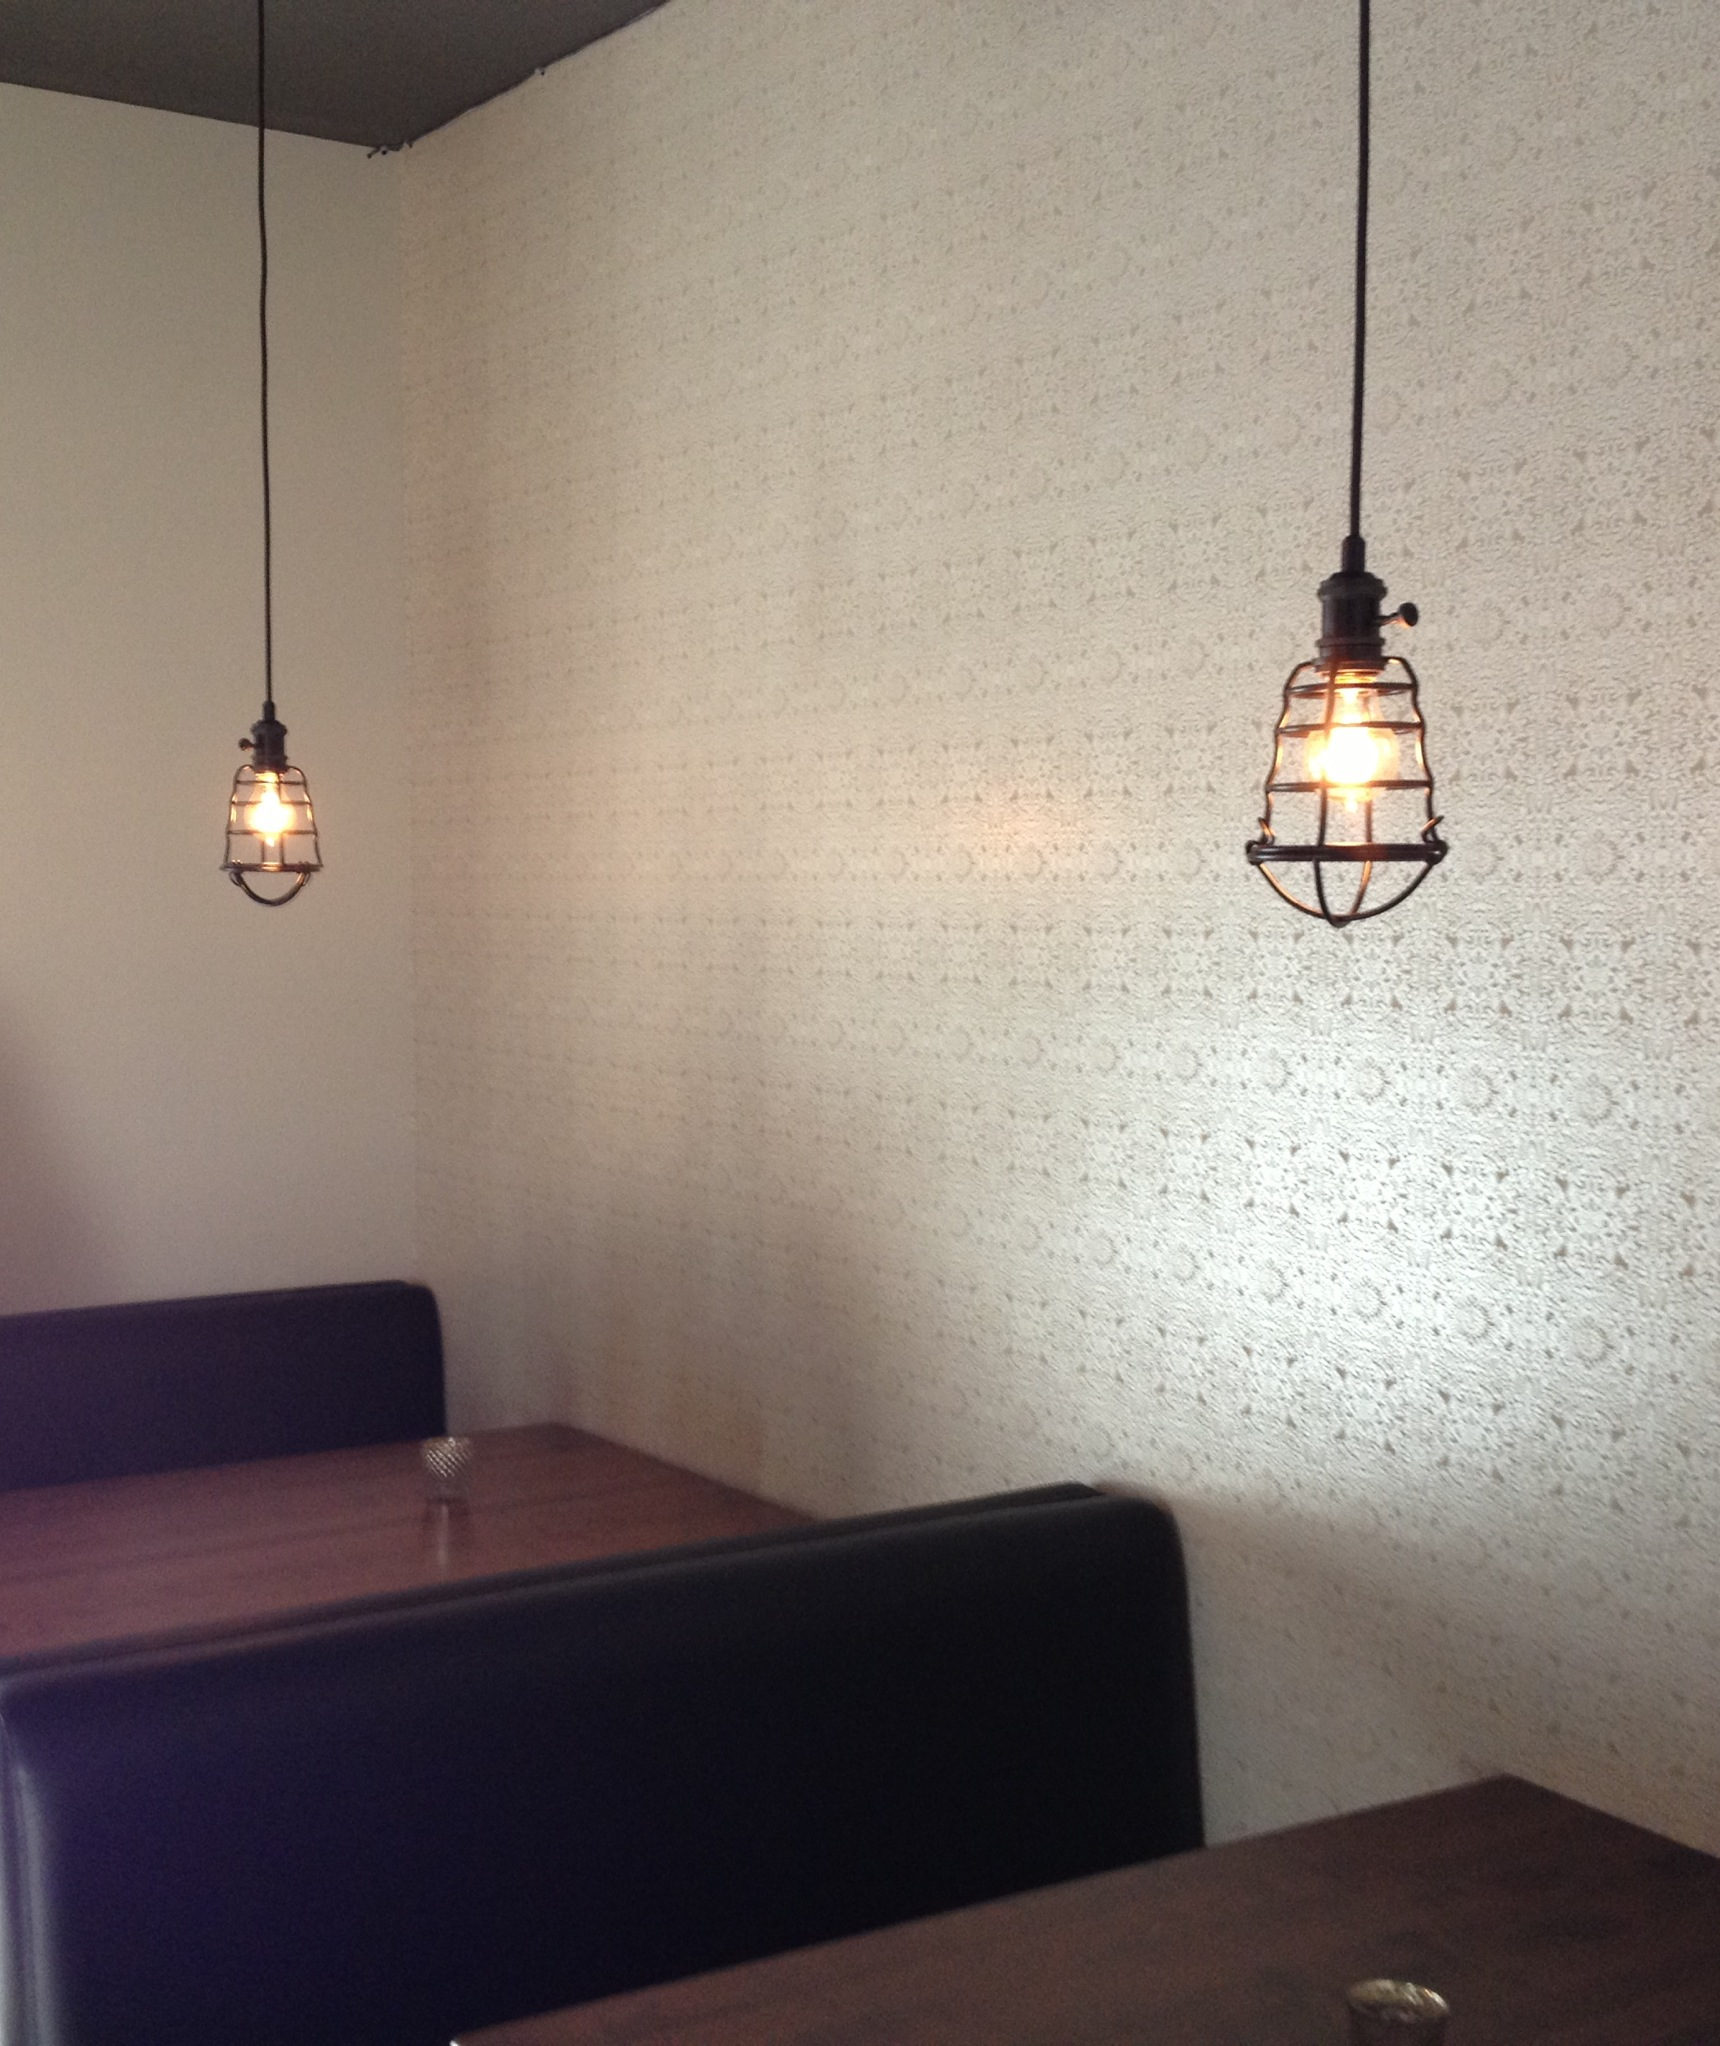 Moroccan wallpaper, industrial pendant lights, old style family booth seating.